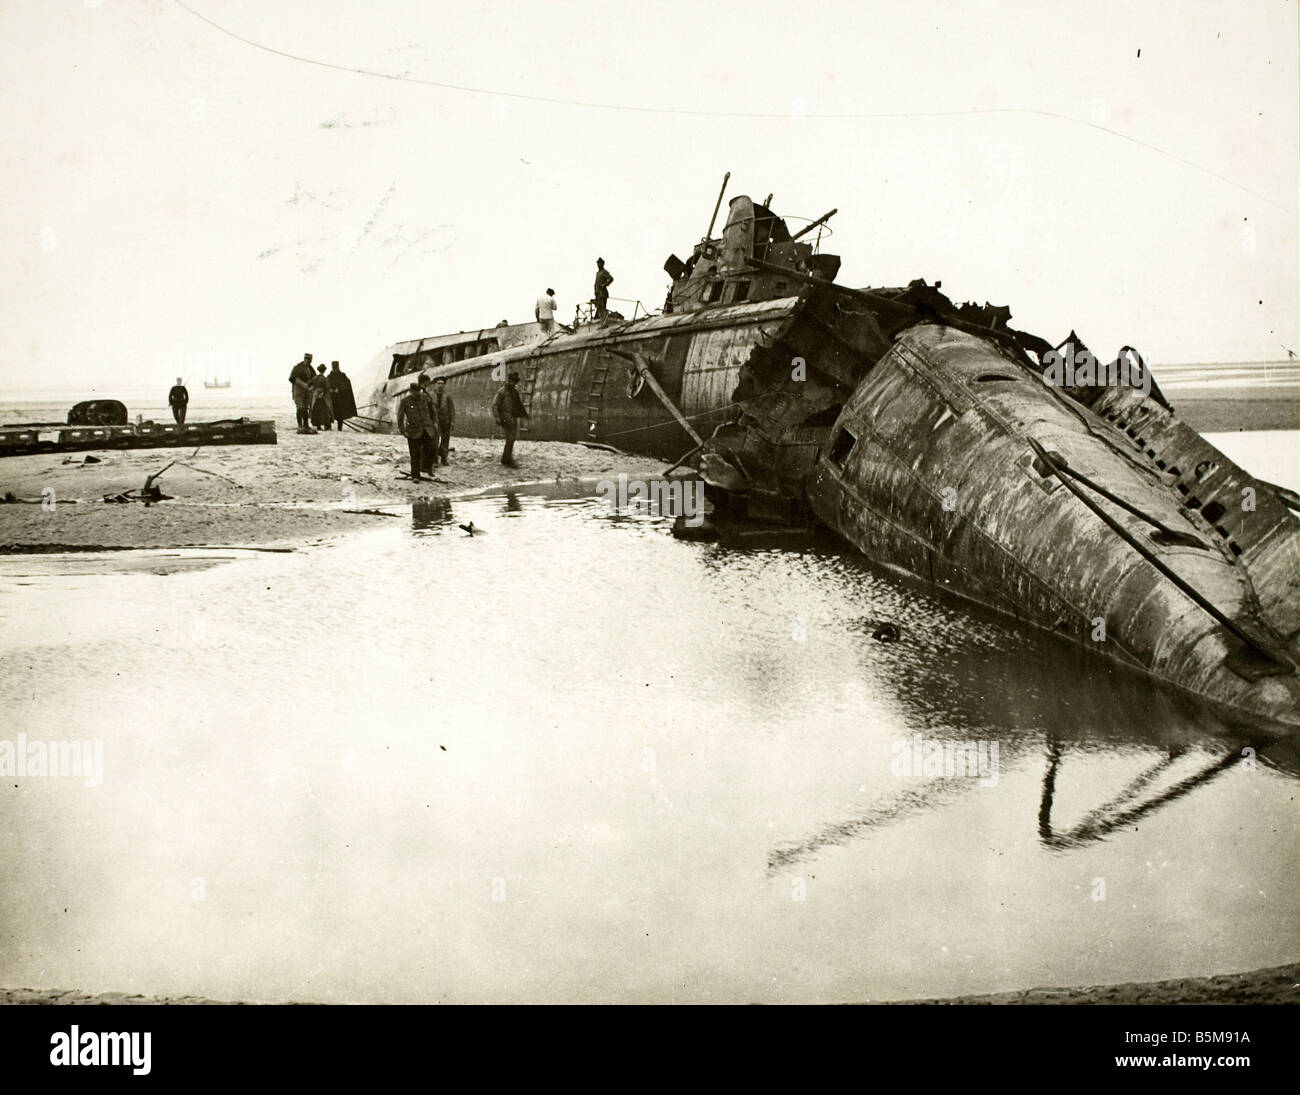 2 G55 M1 1917 14 WWI German submarine French coast History First World War Naval war Destroyed Germand submarine - Stock Image